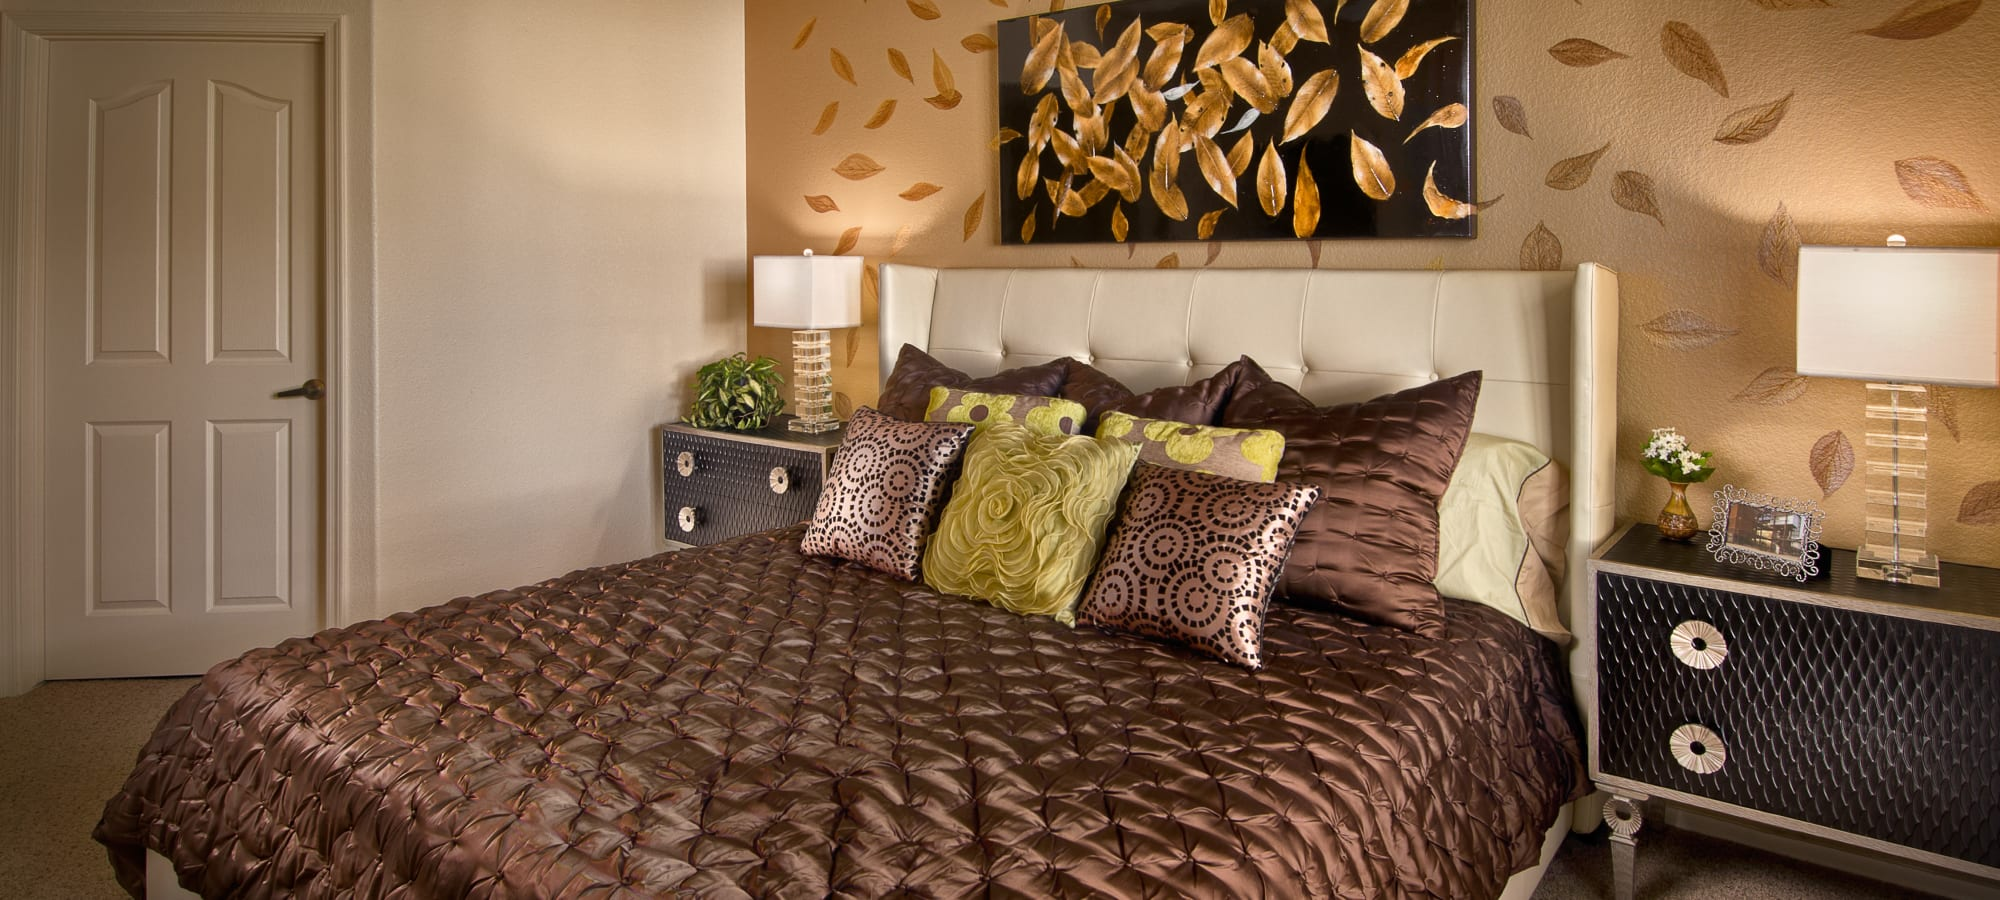 Luxuriously decorated master bedroom in a model home at San Palmilla in Tempe, Arizona